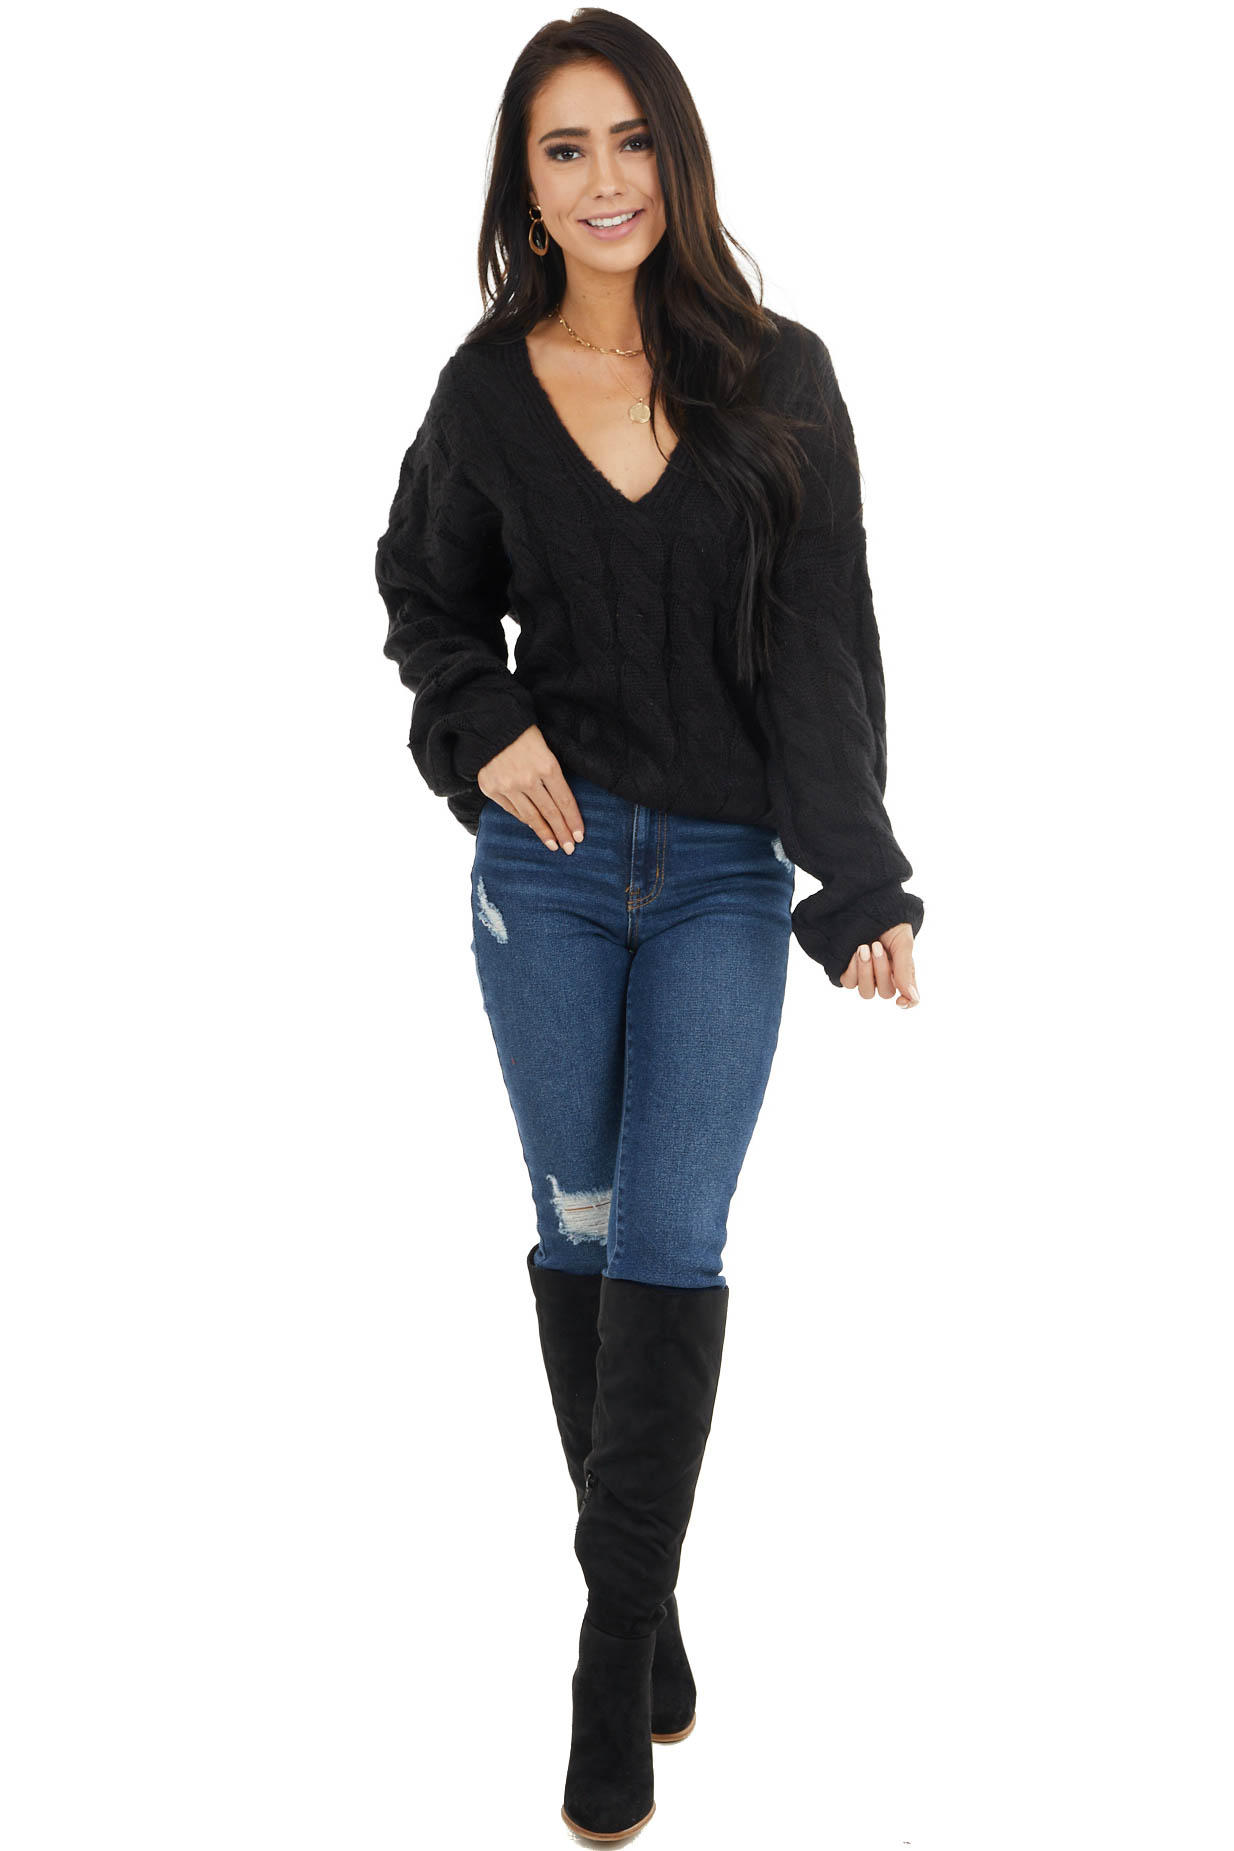 Black V Neck Cable Knit Sweater with Long Bubble Sleeves